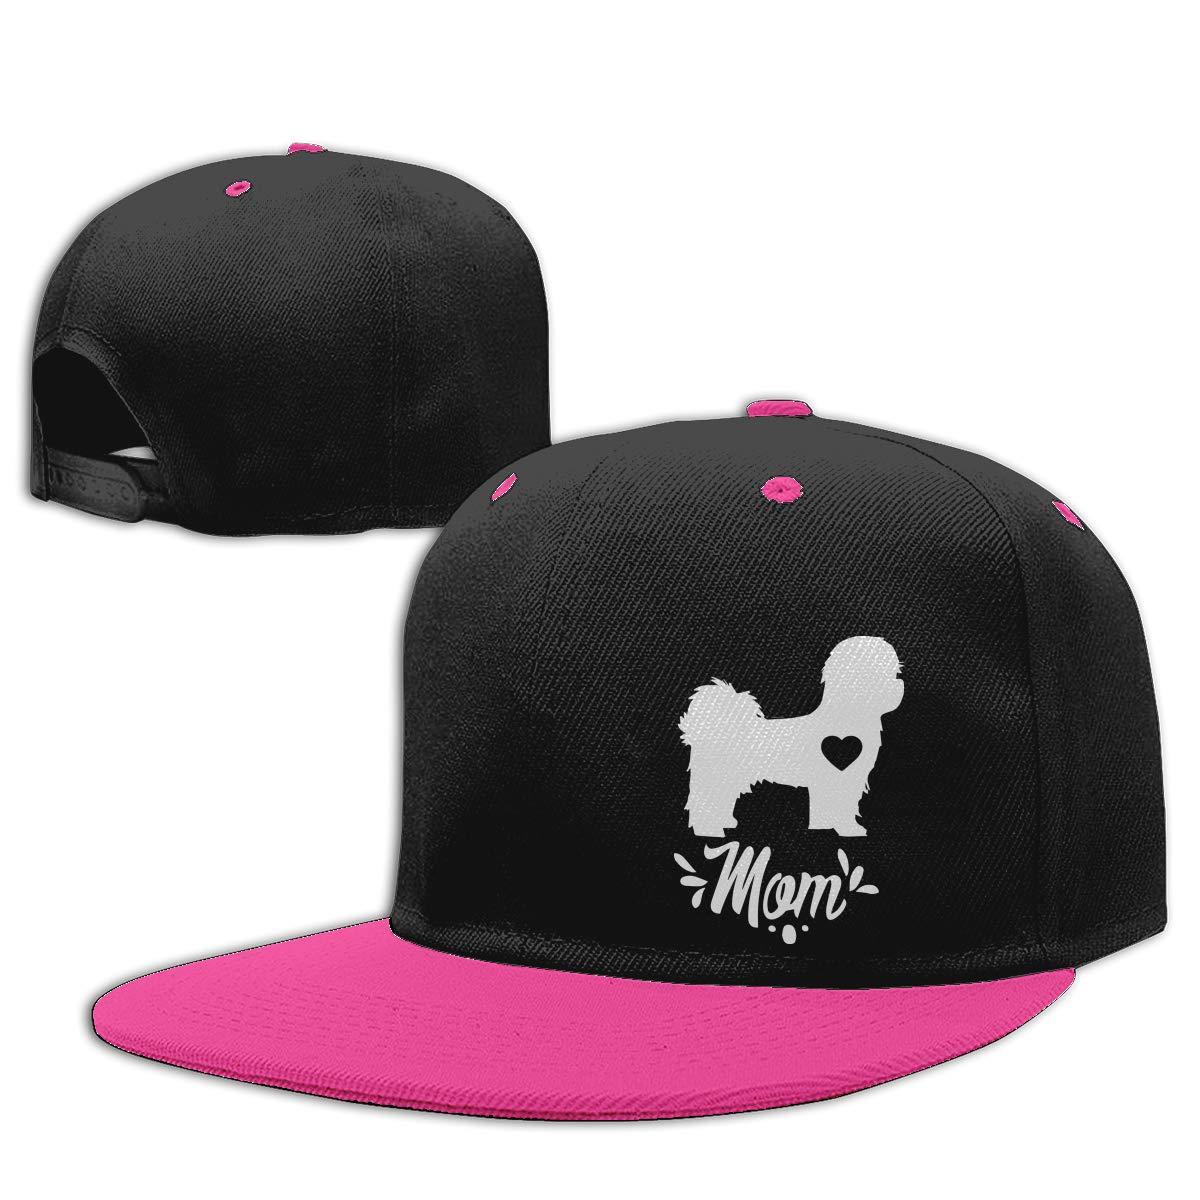 NMG-01 Men Womens Trucker Cap Shih Tzu Dog Mom Adults Flat Bill Baseball Caps